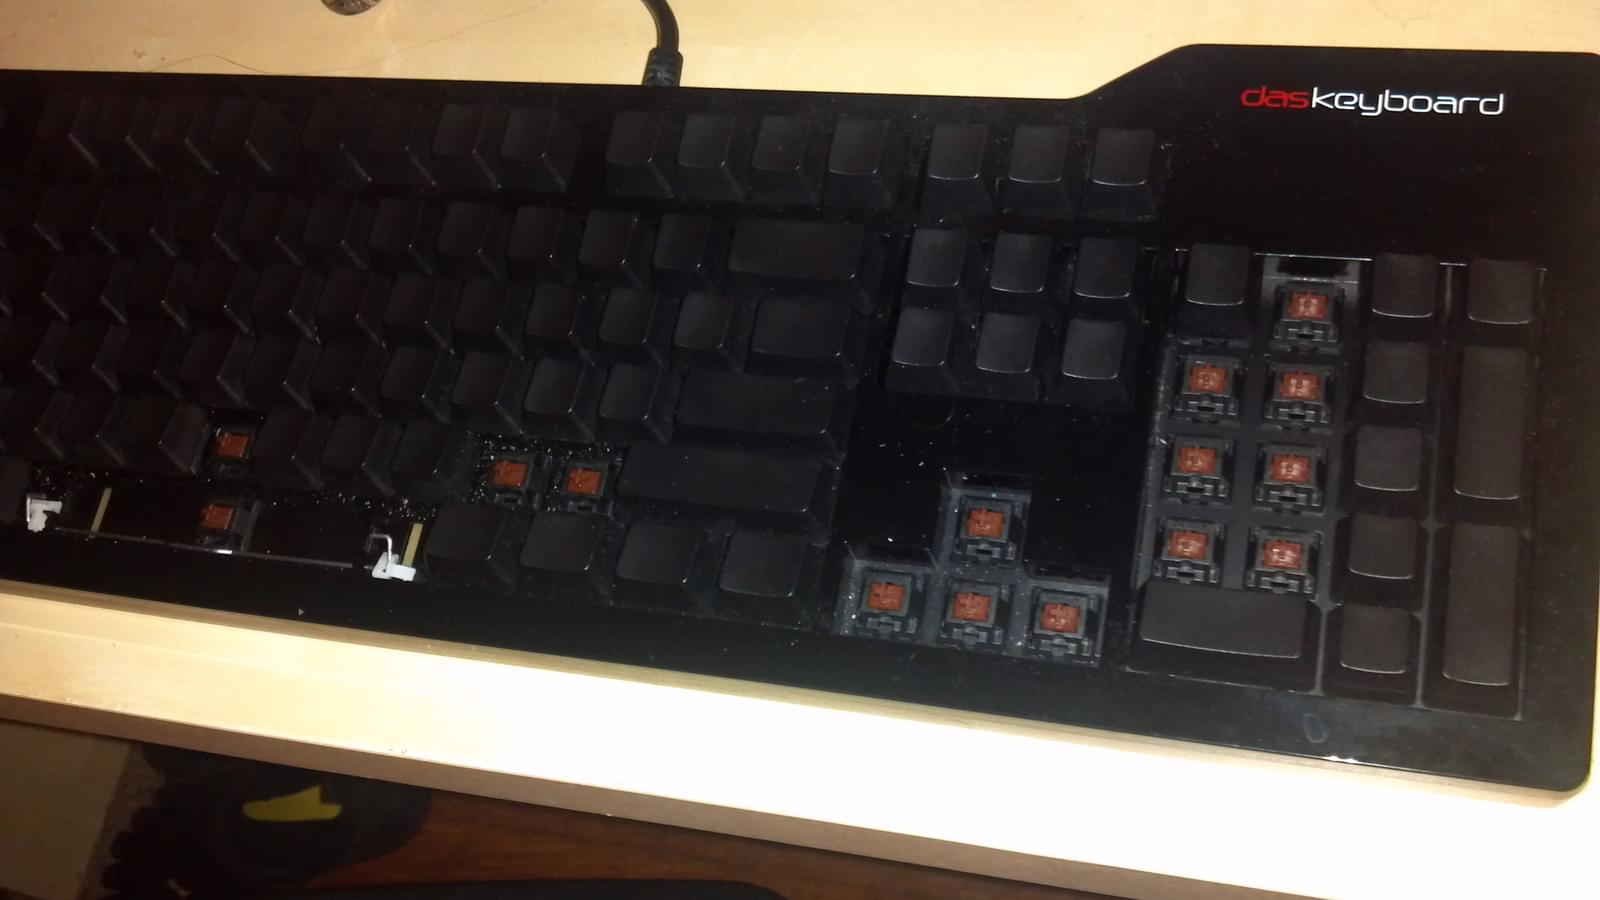 Das Keyboard with some Keycaps Removed